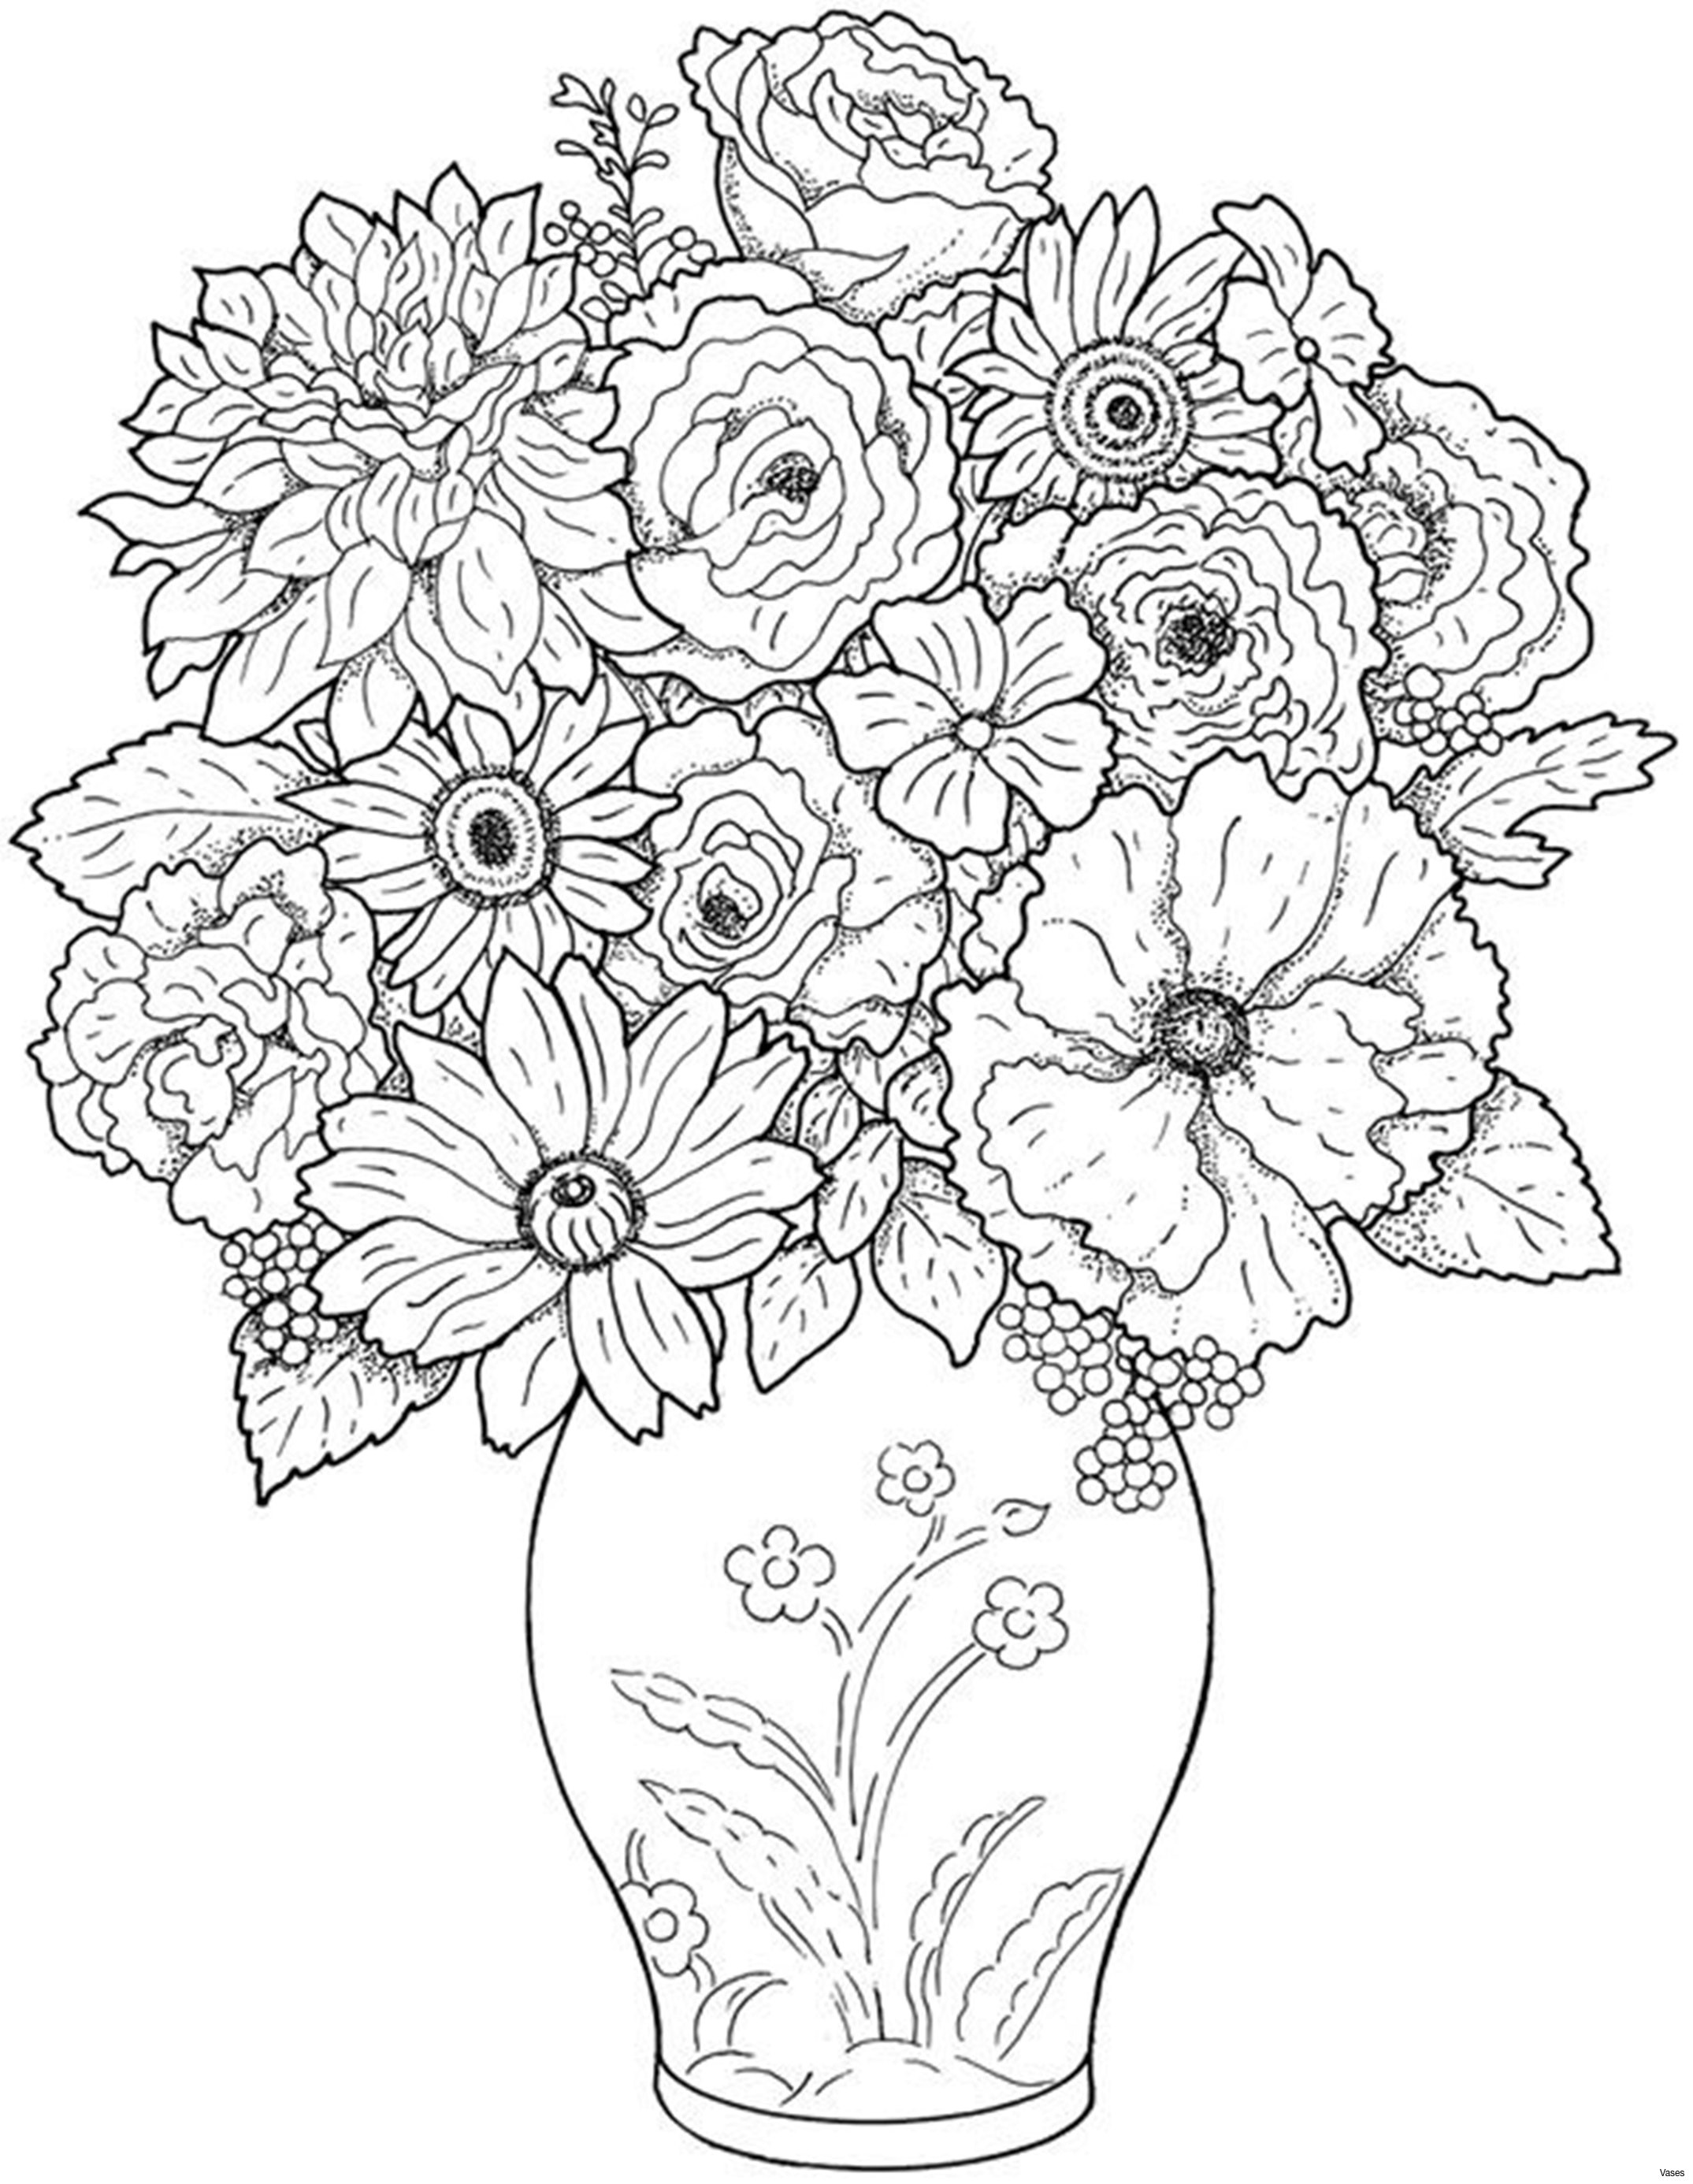 vase with holes of cool vases flower vase coloring page pages flowers in a top i 0d ruva regarding cool vases flower vase coloring page pages flowers in a top i 0d